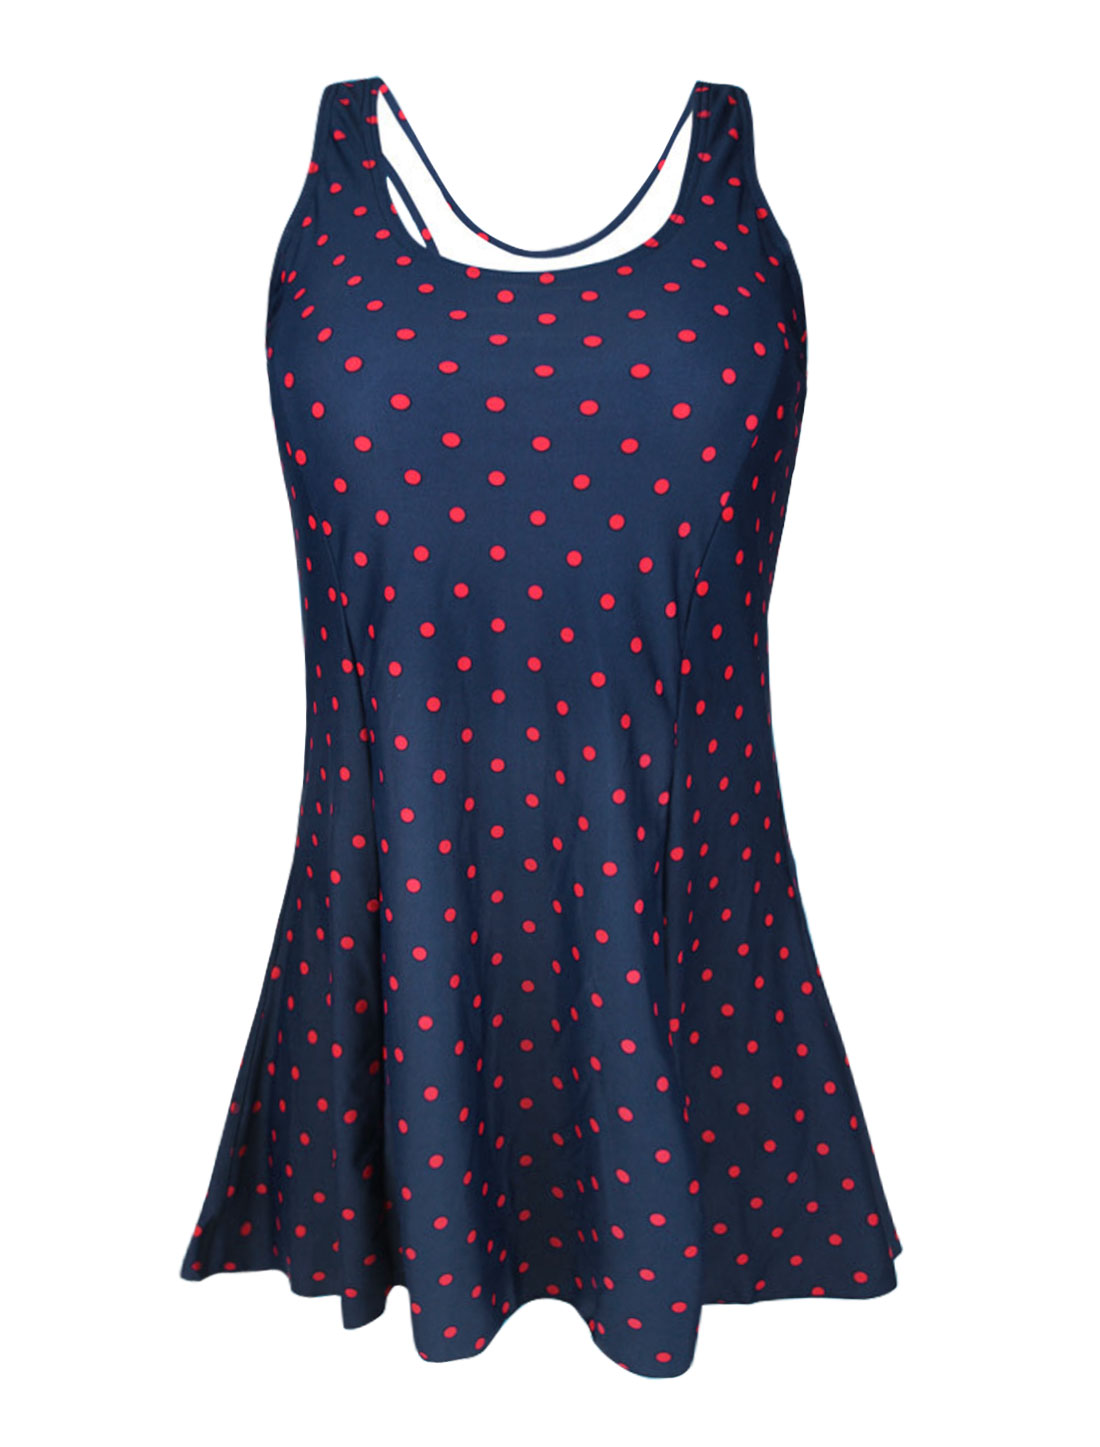 Women Vintage One Piece Dots Slim Bathing Suit Swimsuit Swimdress US 8 Cover Up Navy